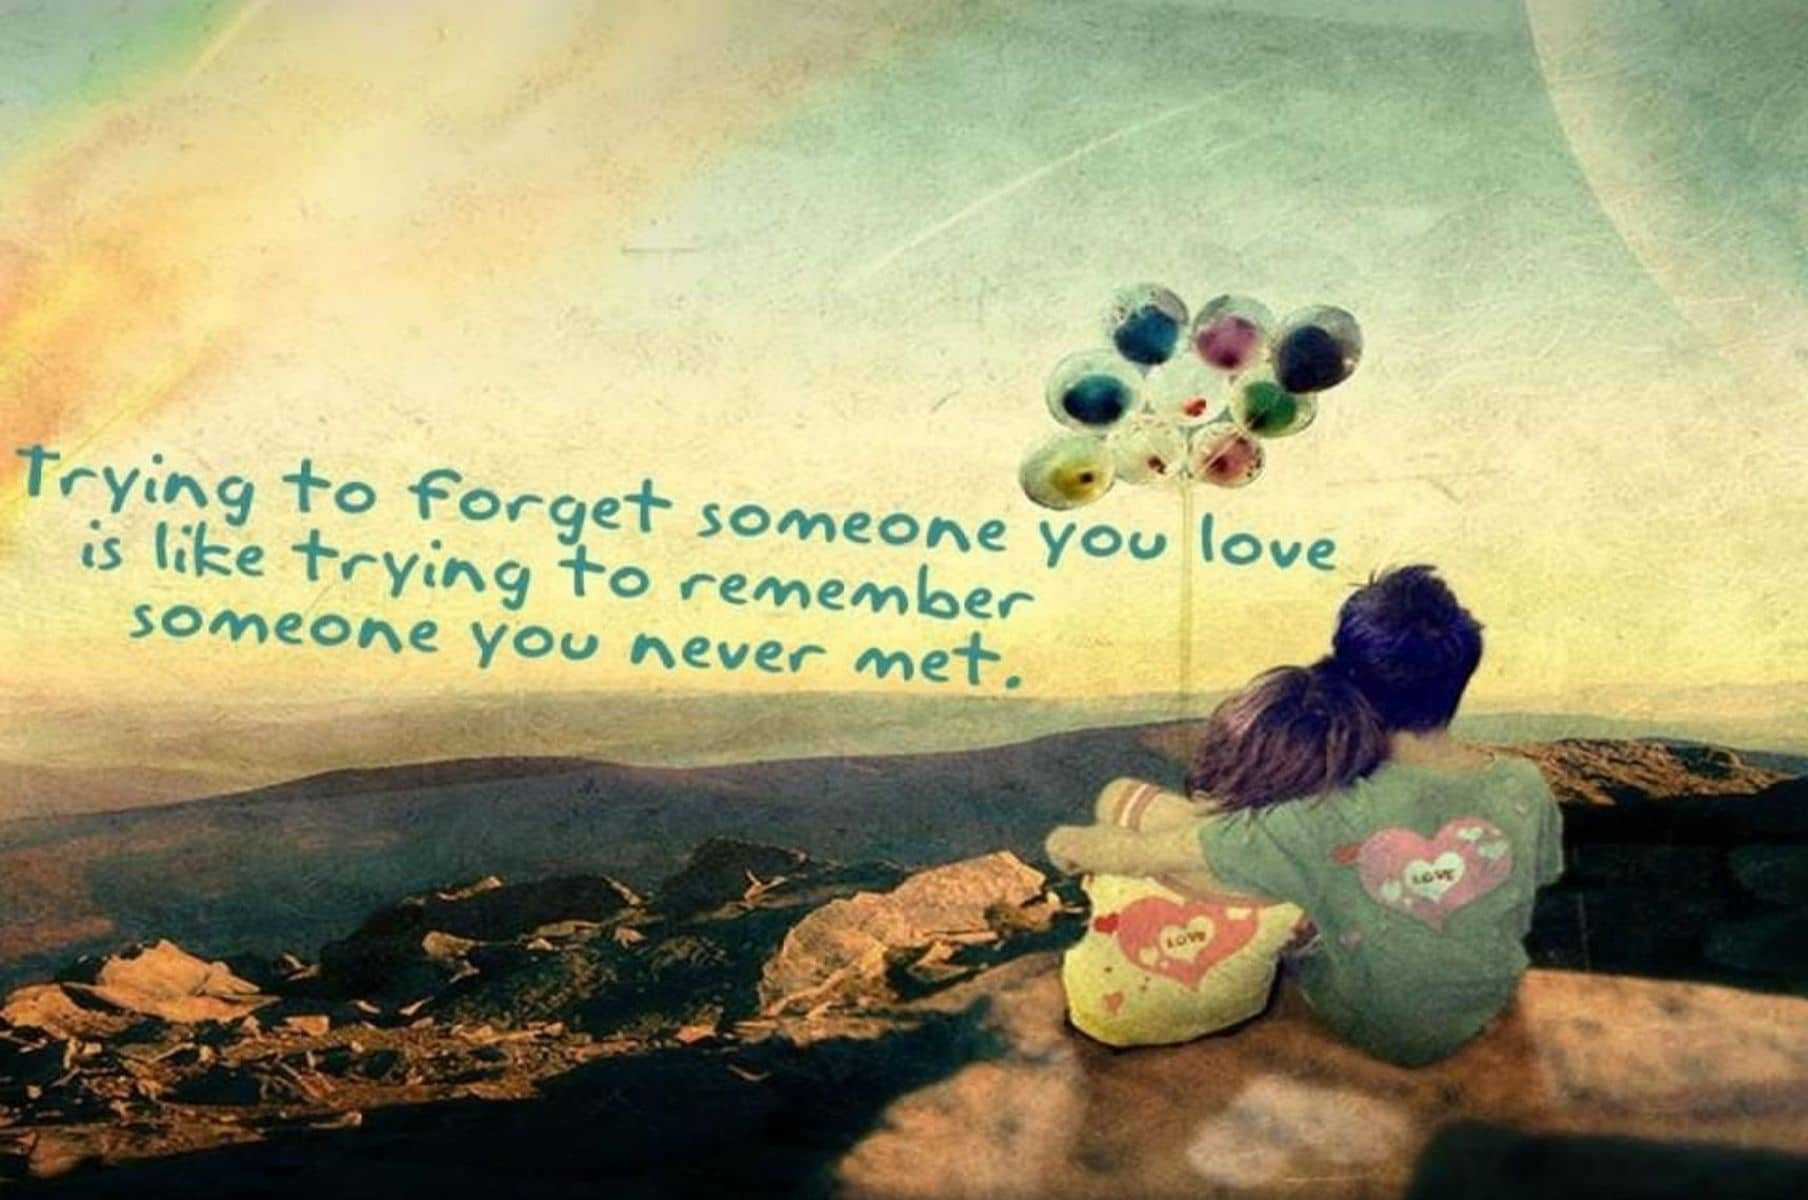 New Cute Wallpapers For Mobile Phones Short Love Quotes For Wedding Couples And Wife Todayz News